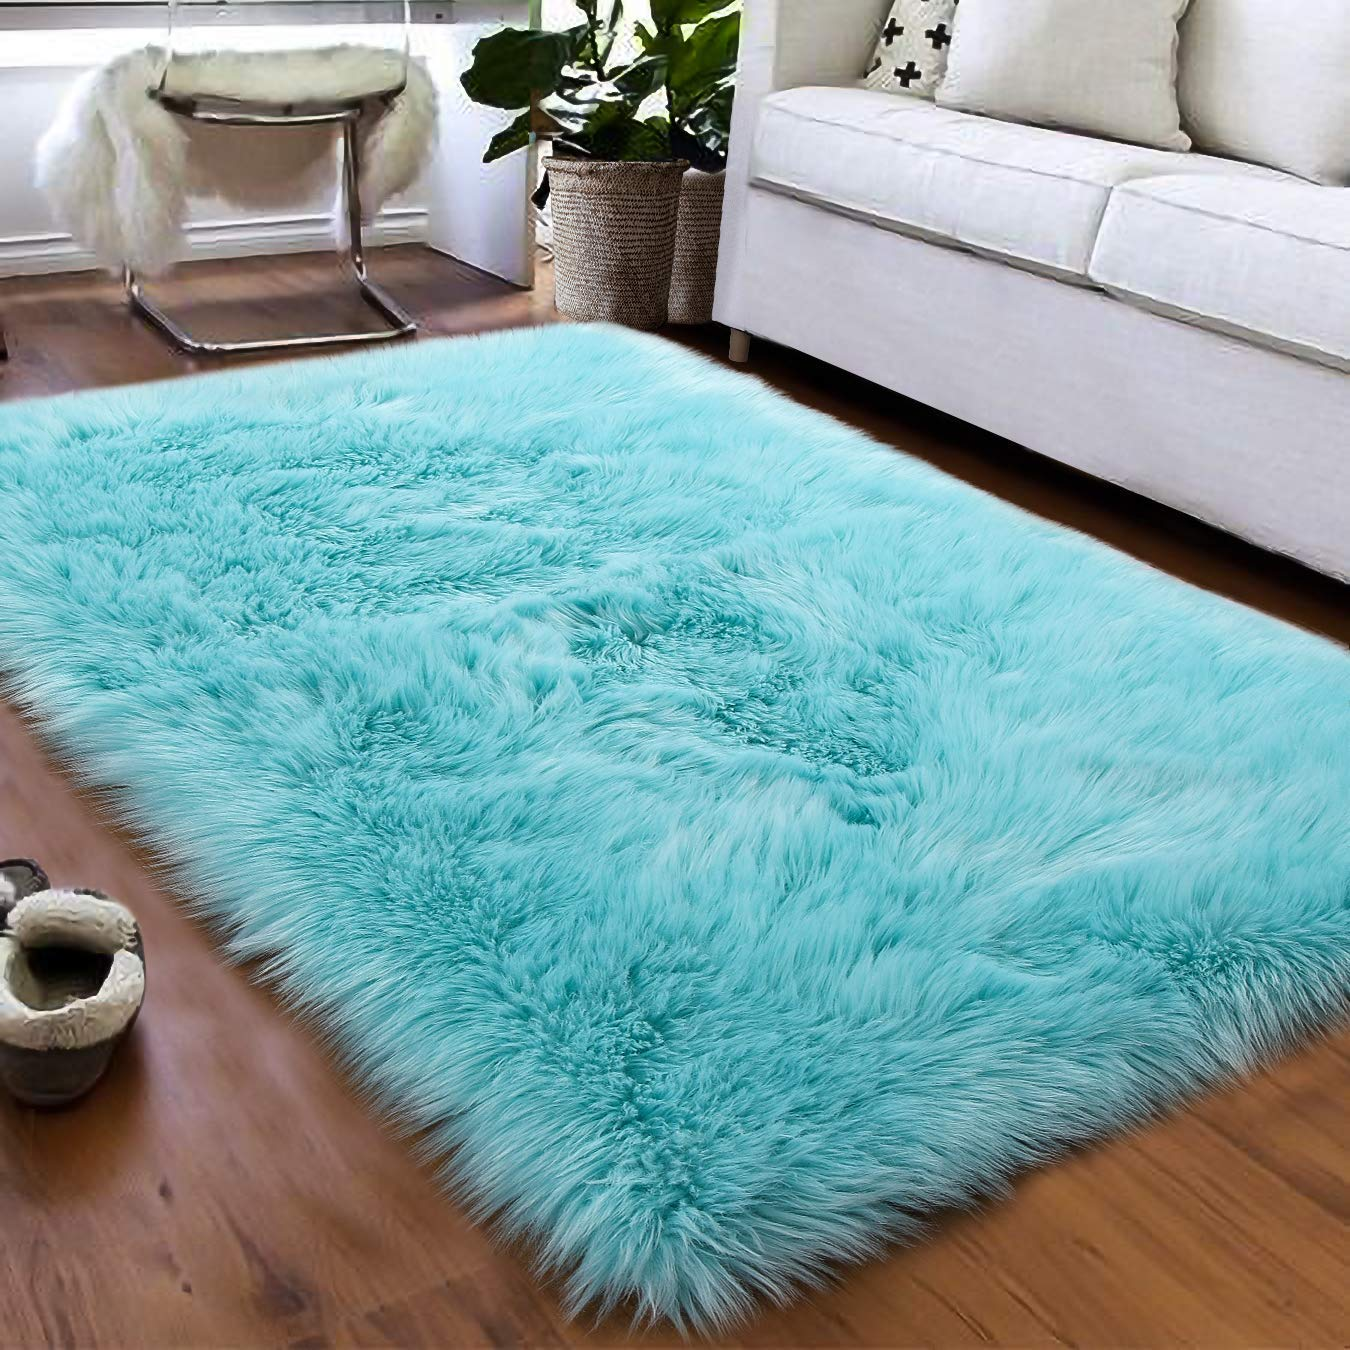 Softlife Faux Fur Sheepskin Area Rugs Shaggy Wool Carpet for Girls Room Bedroom Living Room Home Decor Rug (3ft x 5ft, Light Blue)